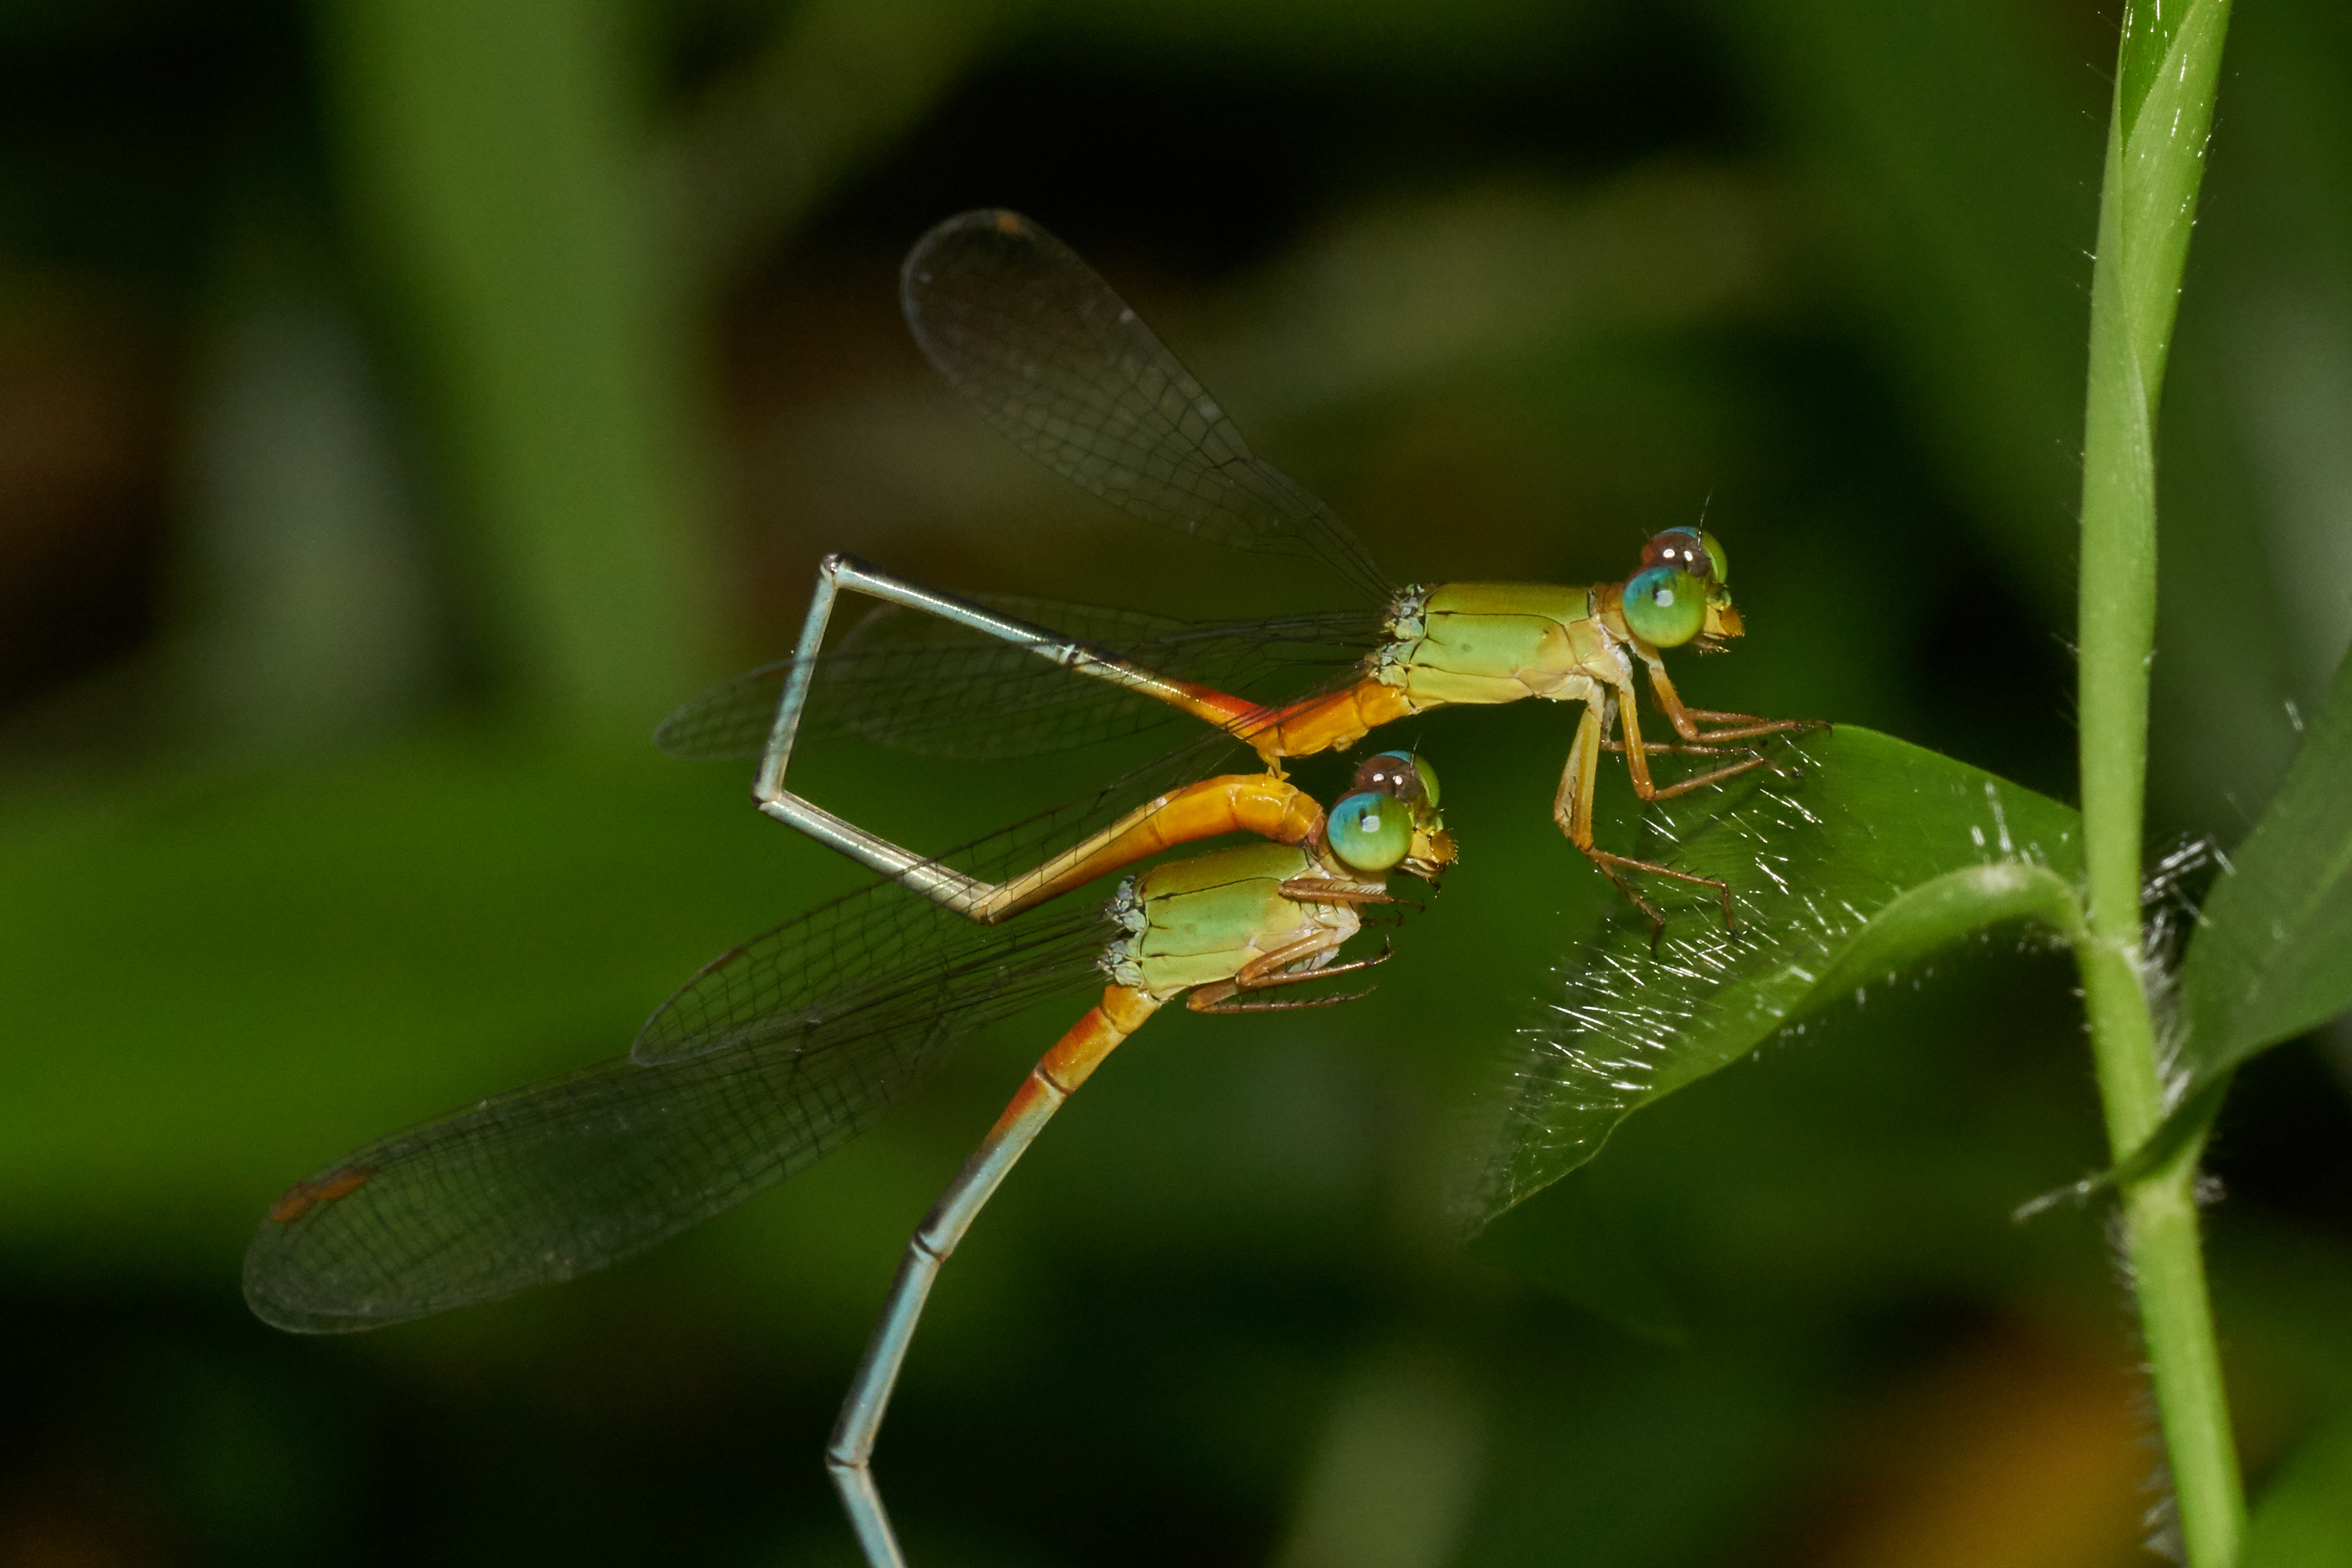 First stage: Ceriagrion cerinorubellum pair with male transferring sperm from the primary to the secondary sex organs.